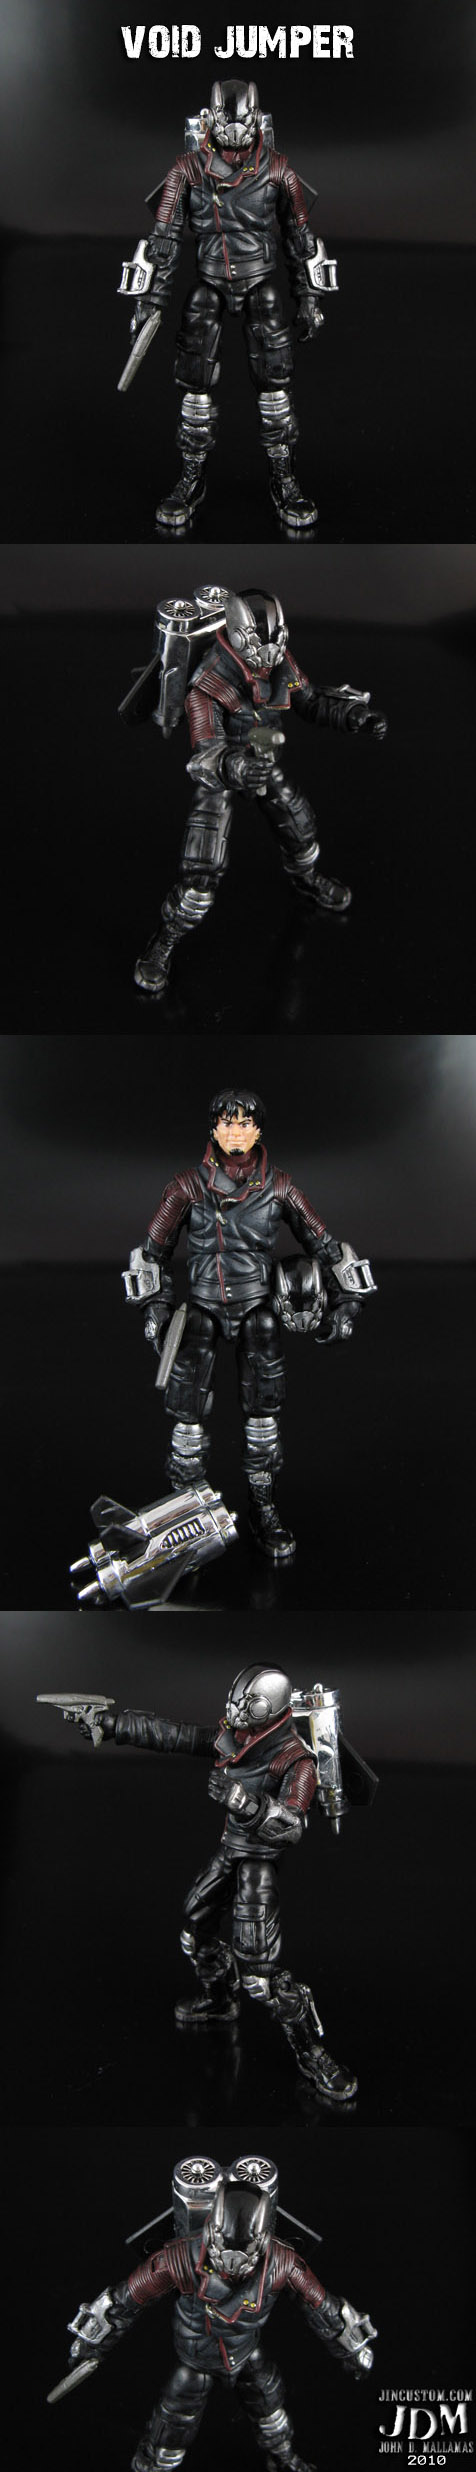 GI Joe Custom Figure